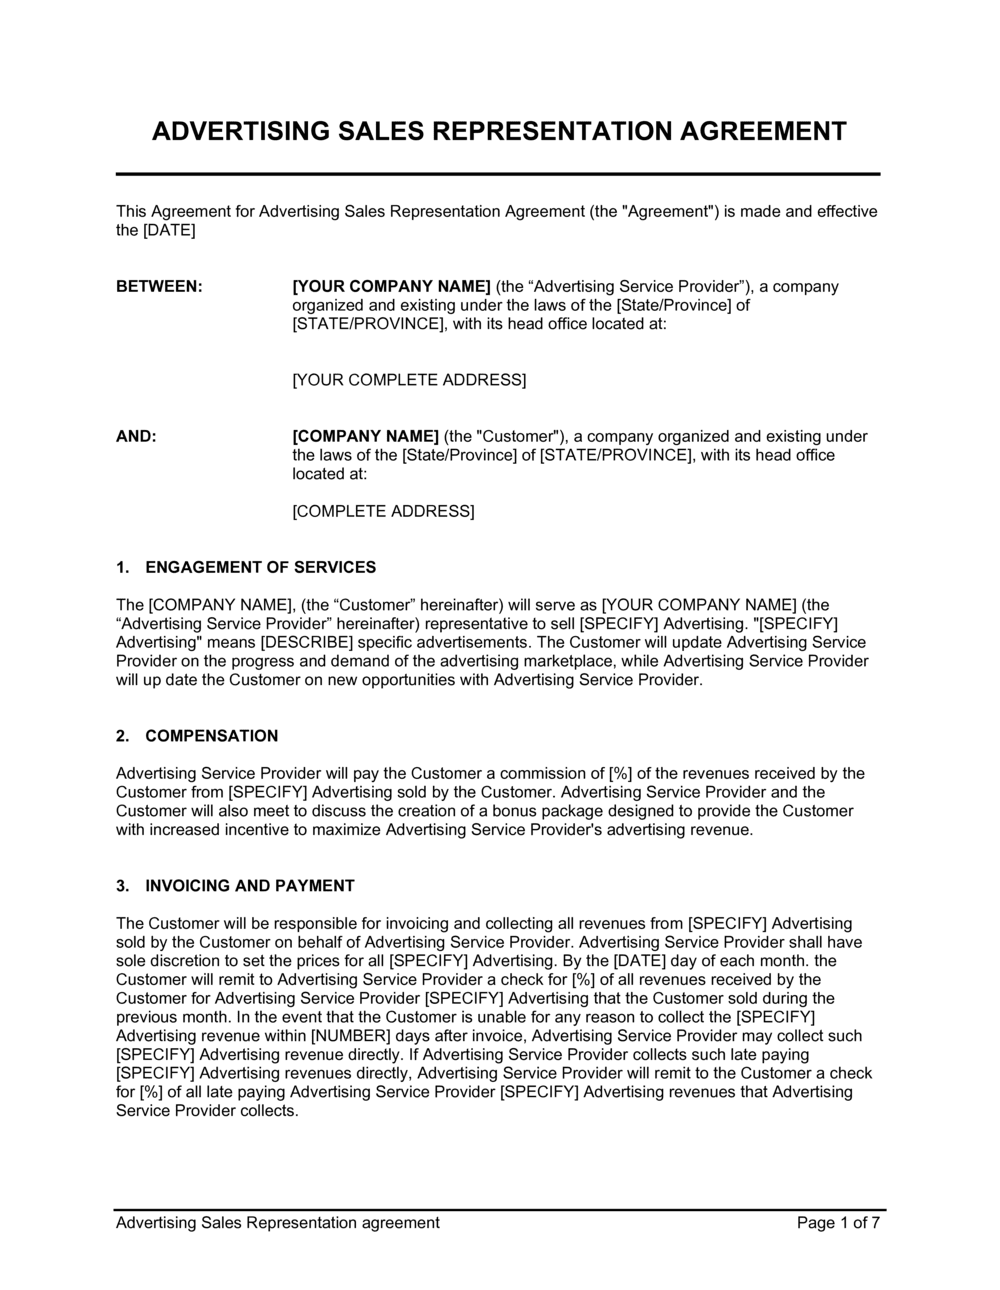 Business-in-a-Box's Advertising Sales Representation Agreement Template